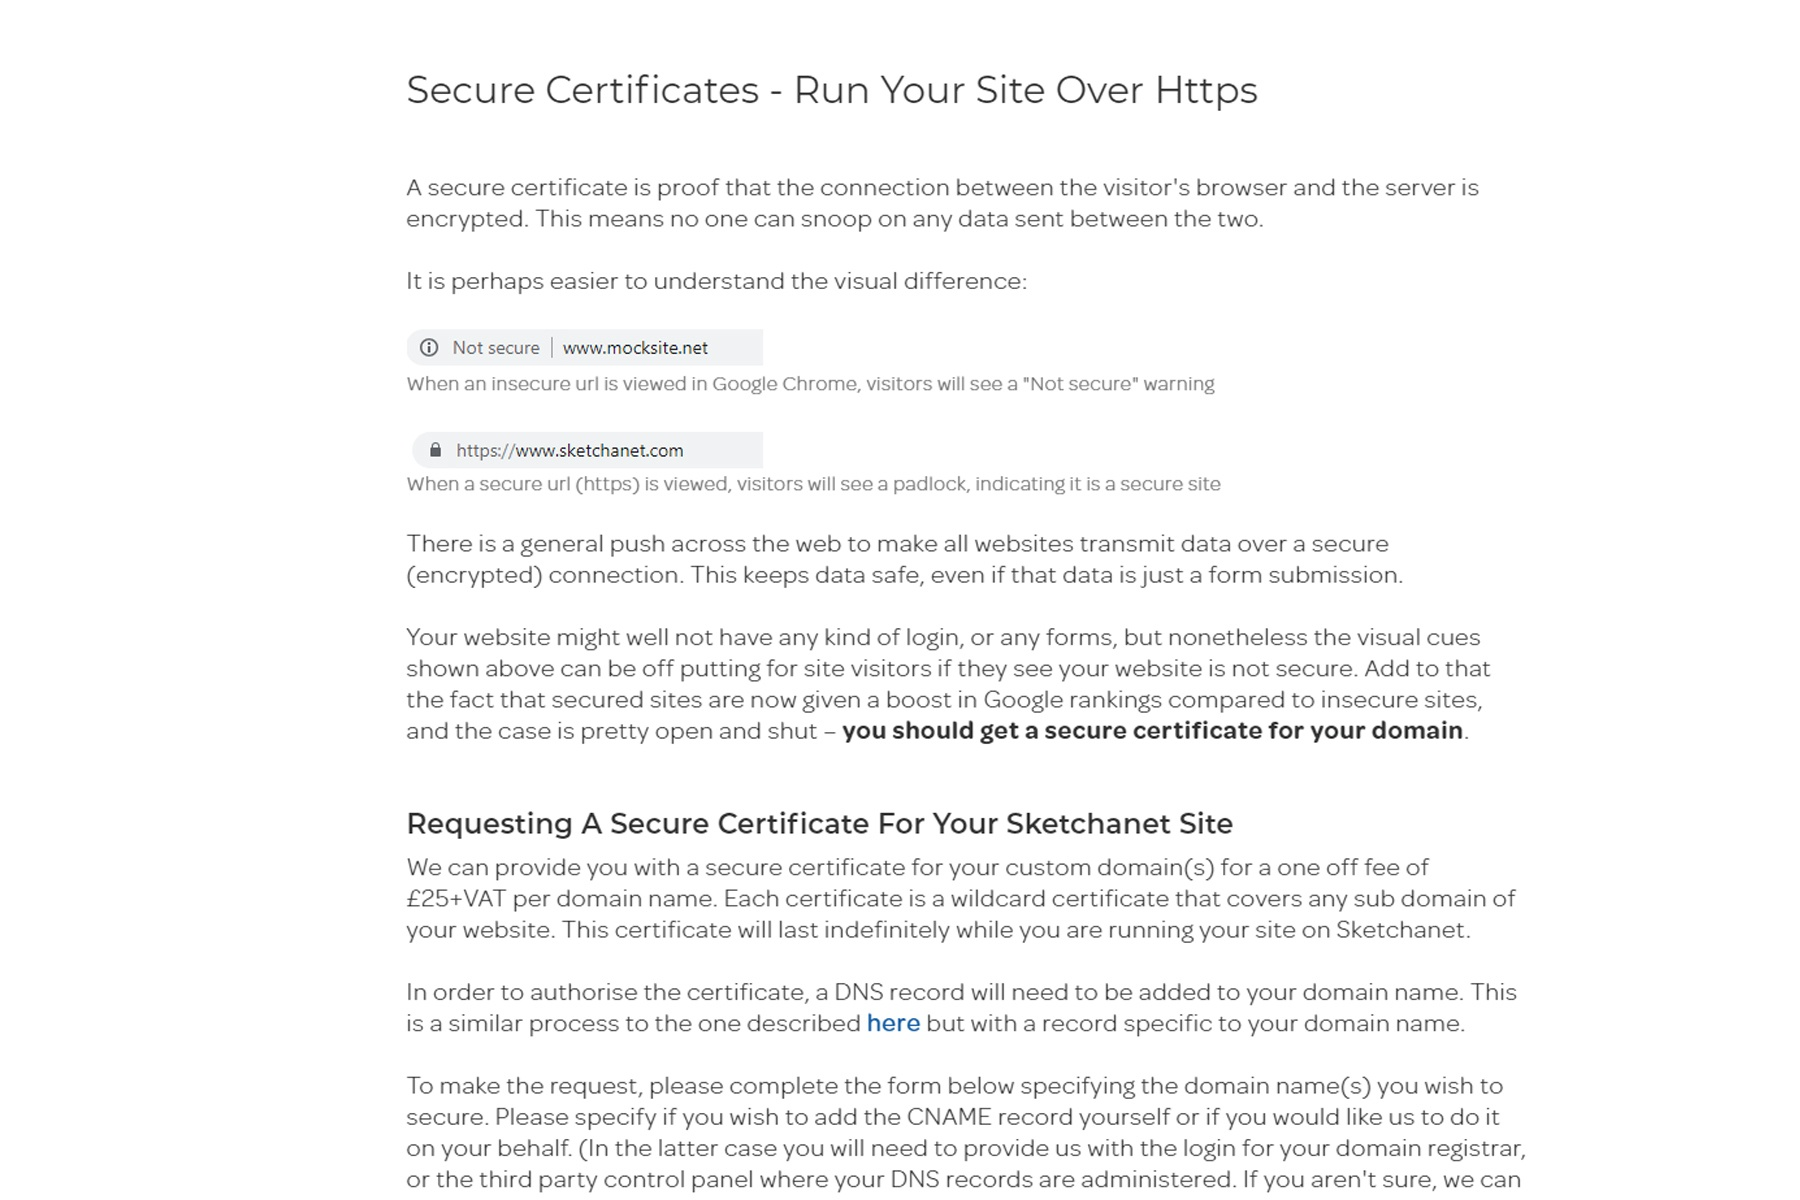 Secure Certificates - Run Your Site Over Https image